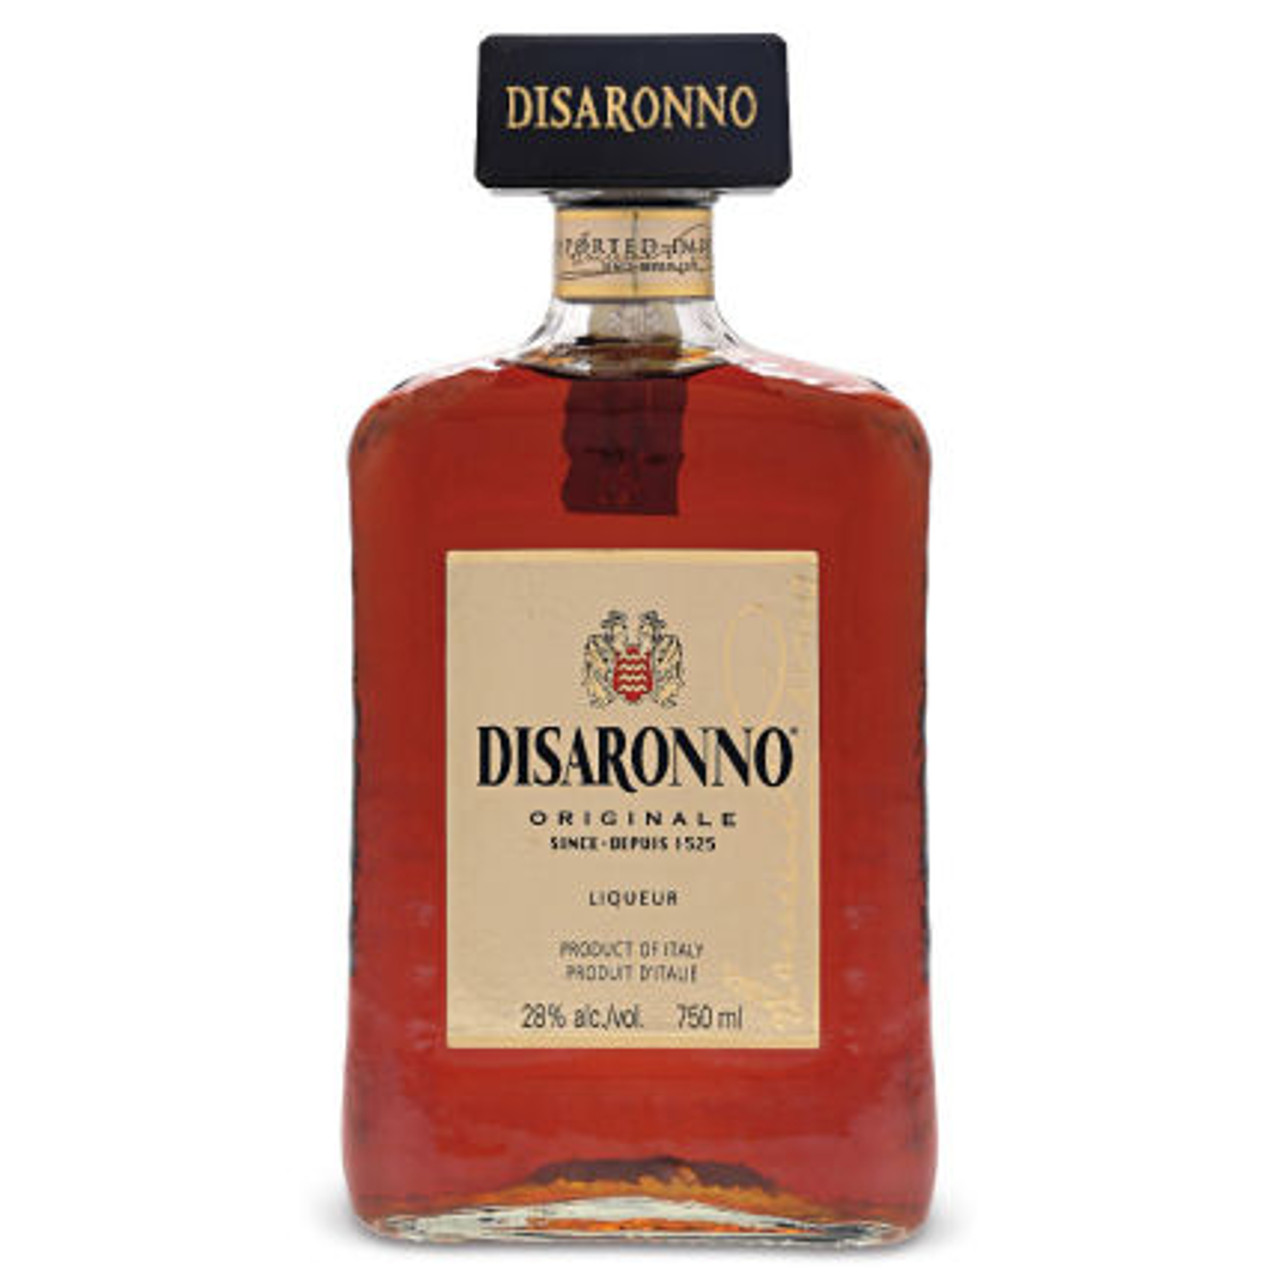 Disaronno Originale Italian Liqueur 750ml